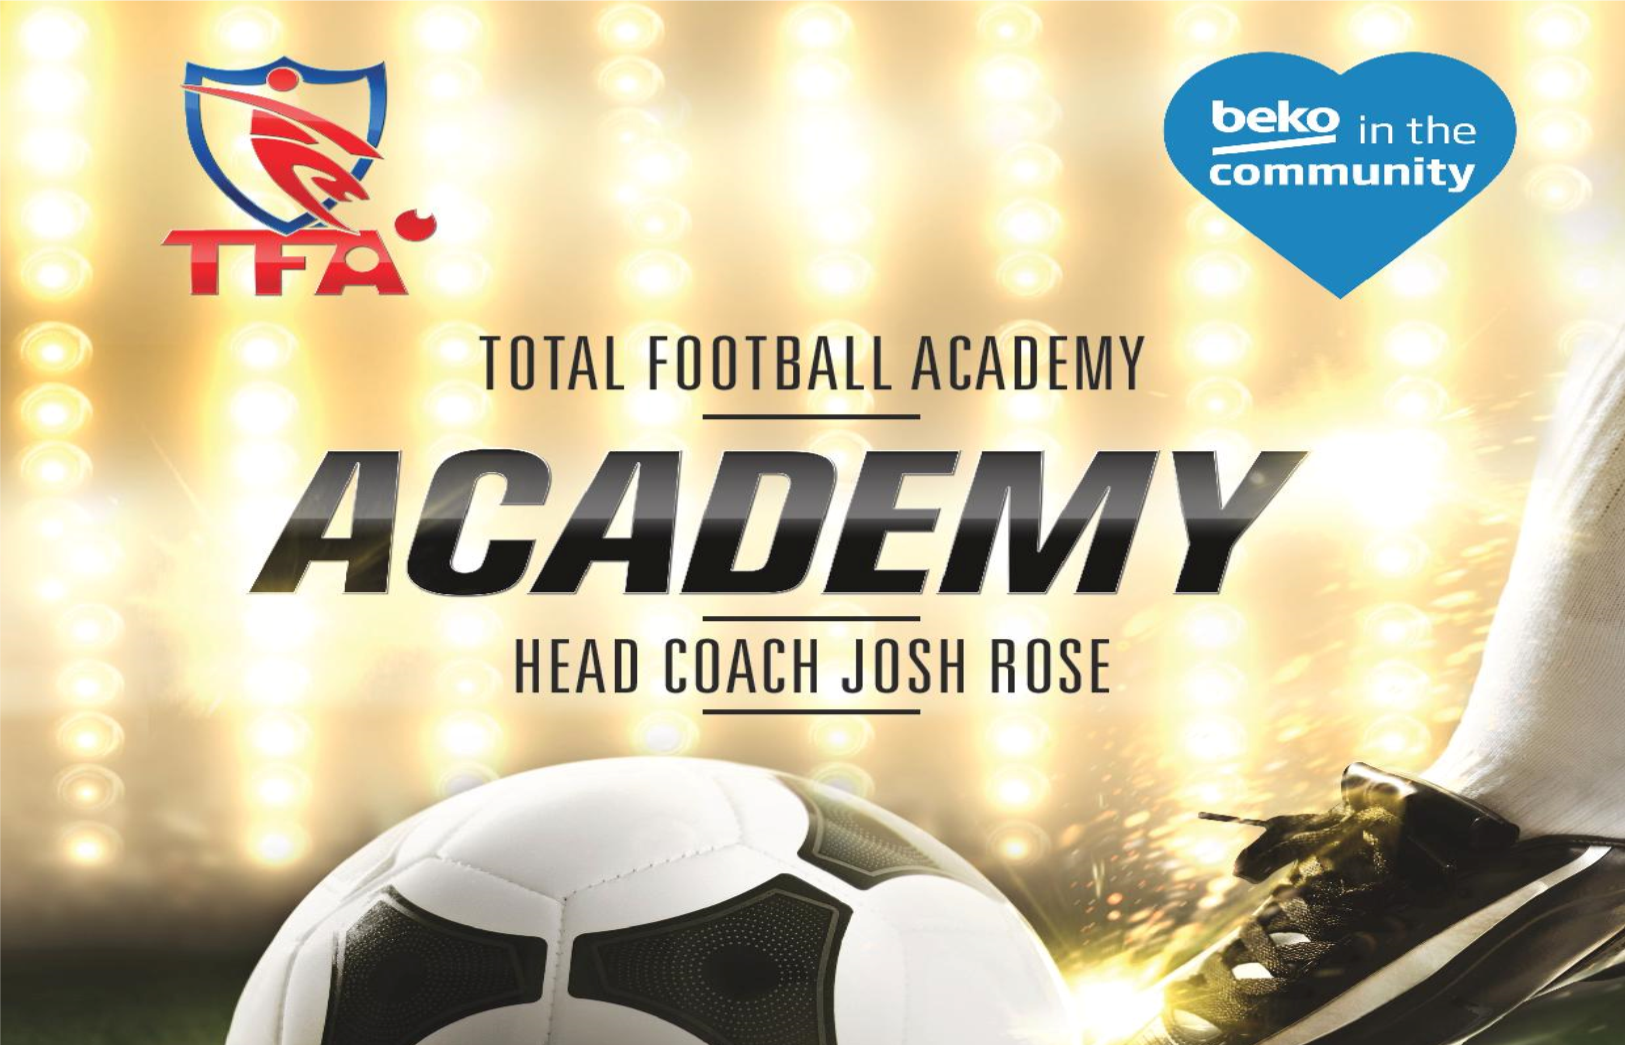 TOTAL FOOTBALL ACADEMY || <BR><BR> With Central Coast Mariners Star Josh Rose